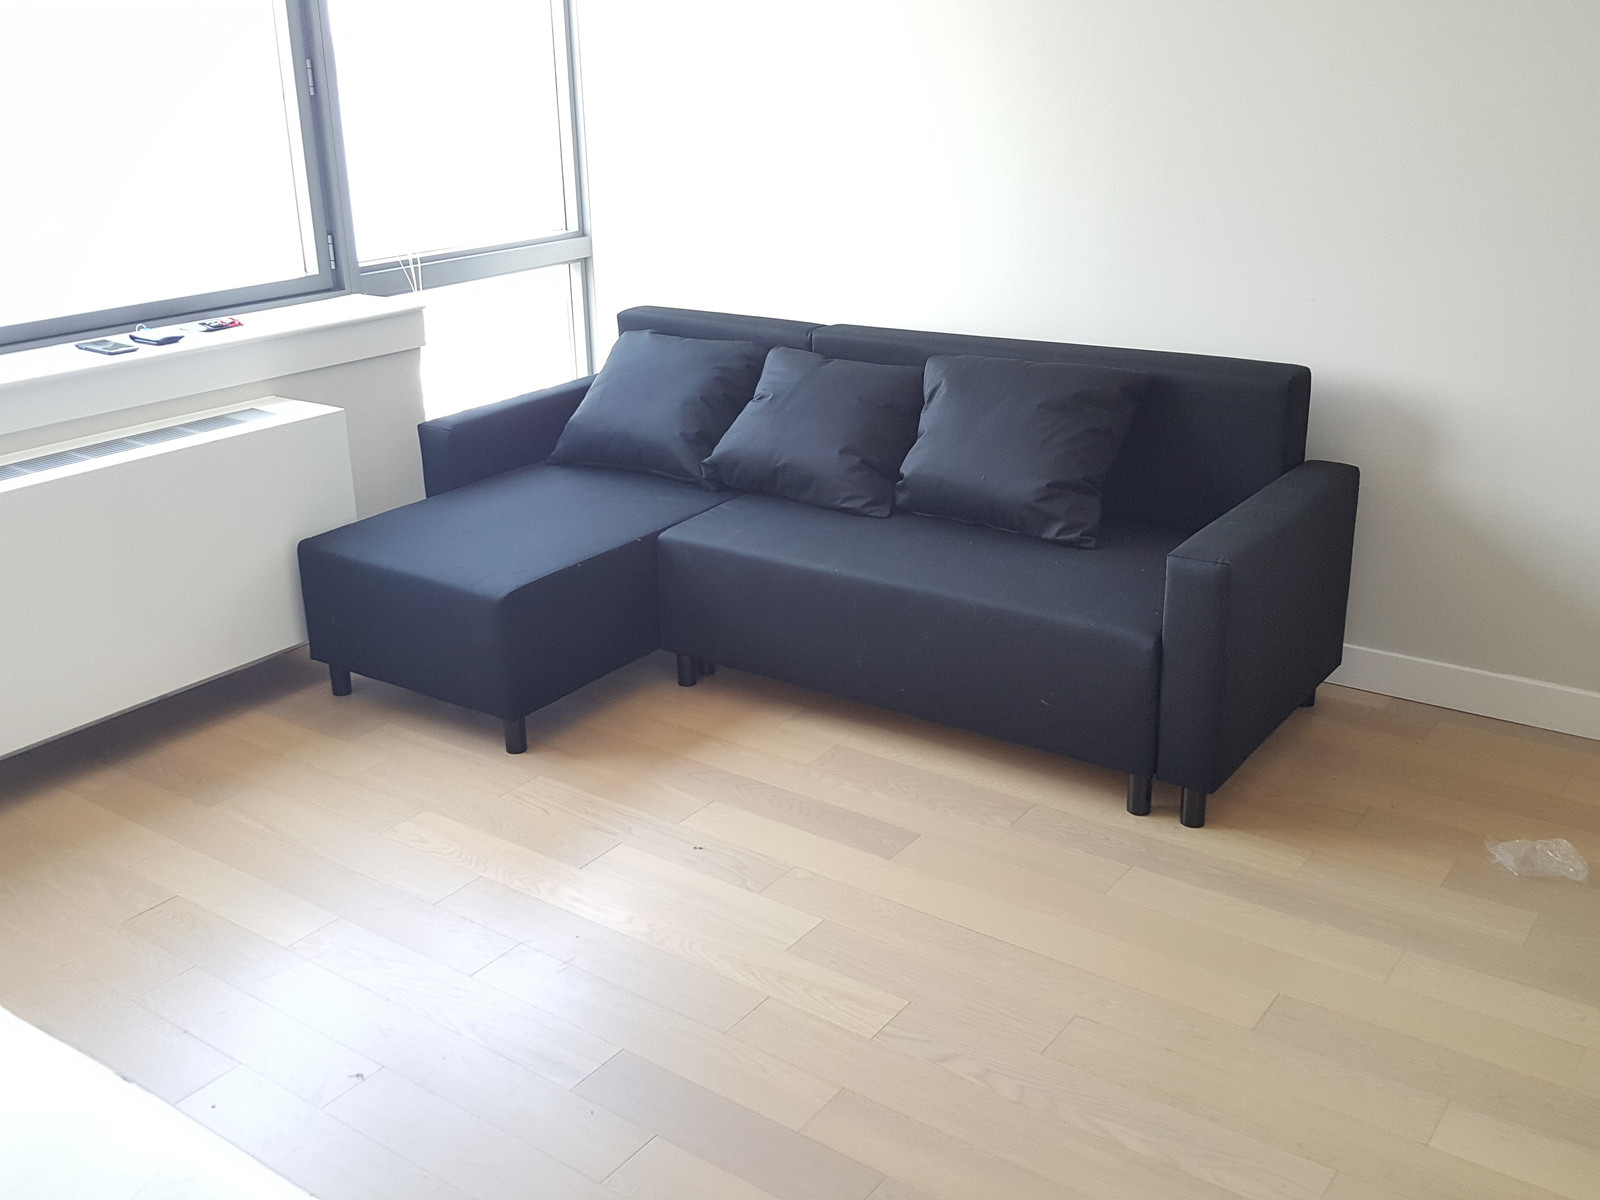 Ikea Sofa Assembly Ikea Delivery Assembly Service In Nyc Faqs